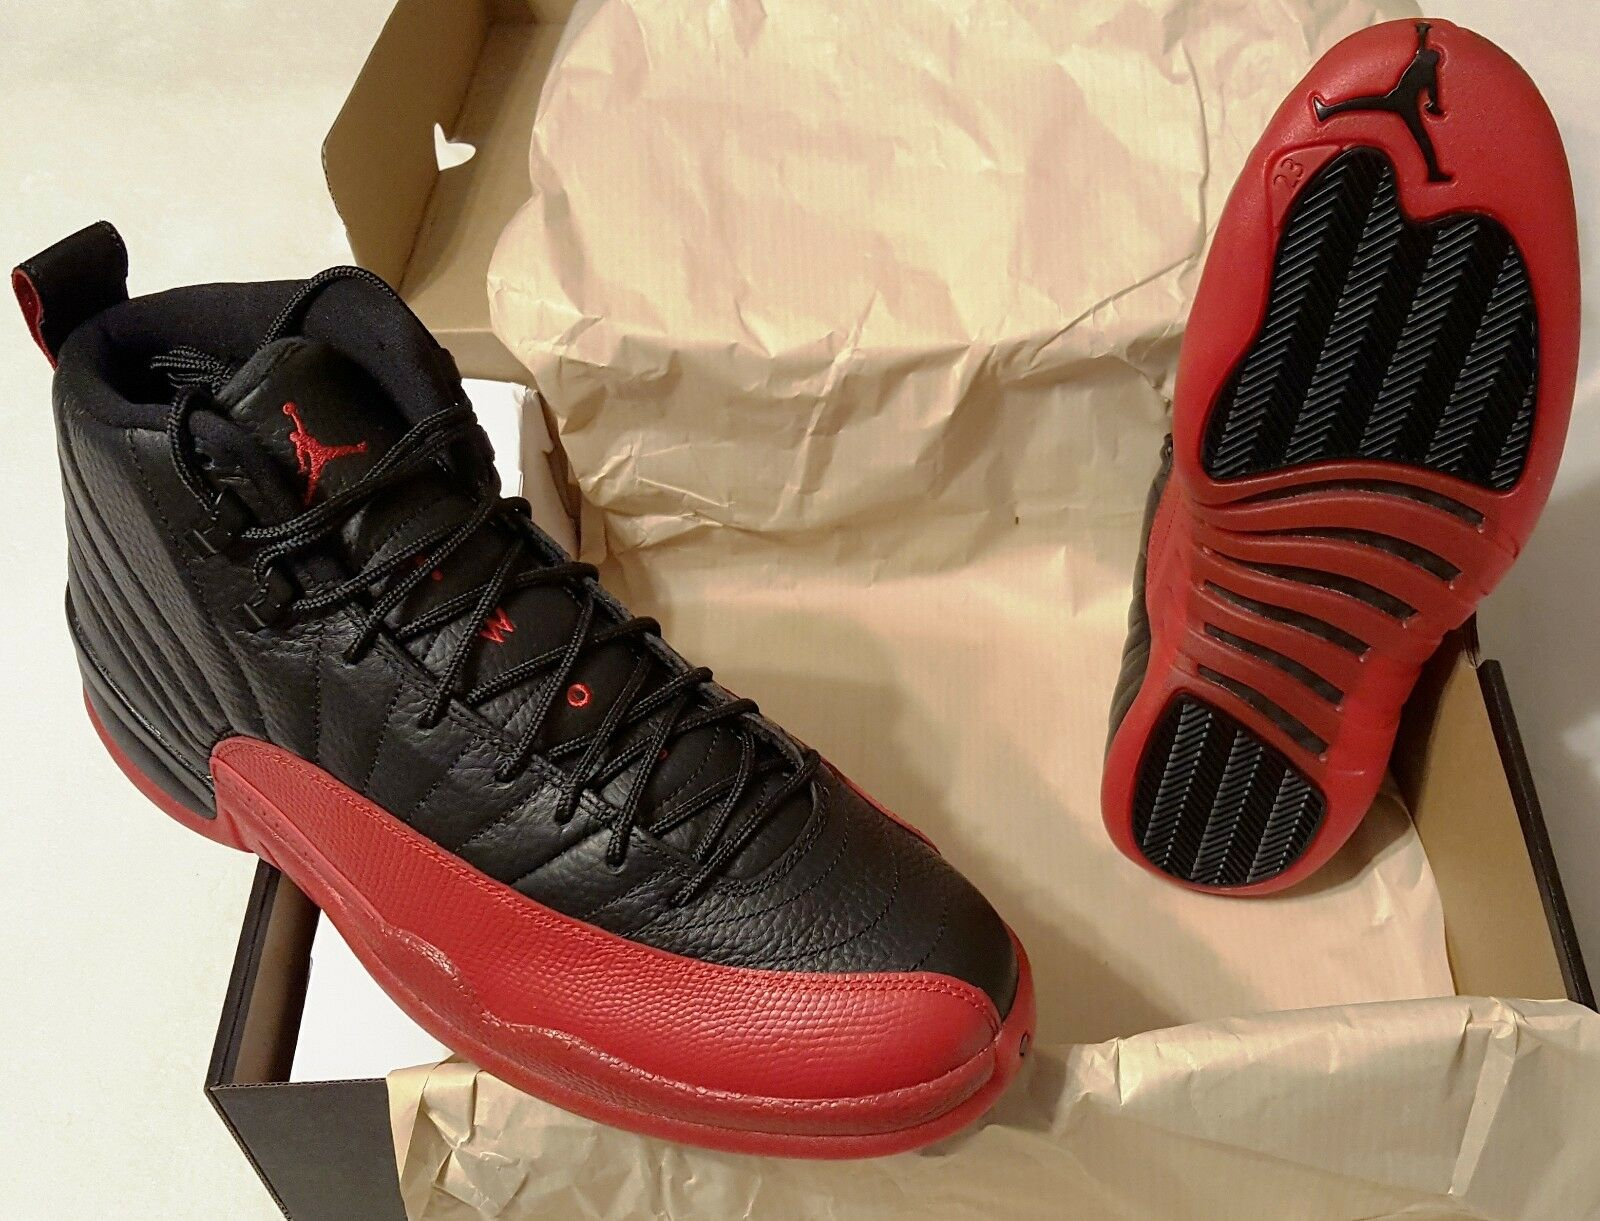 Nike Air Jordan 12 Flu Game New In Box Mens Size 12 Basketball Retro 2016